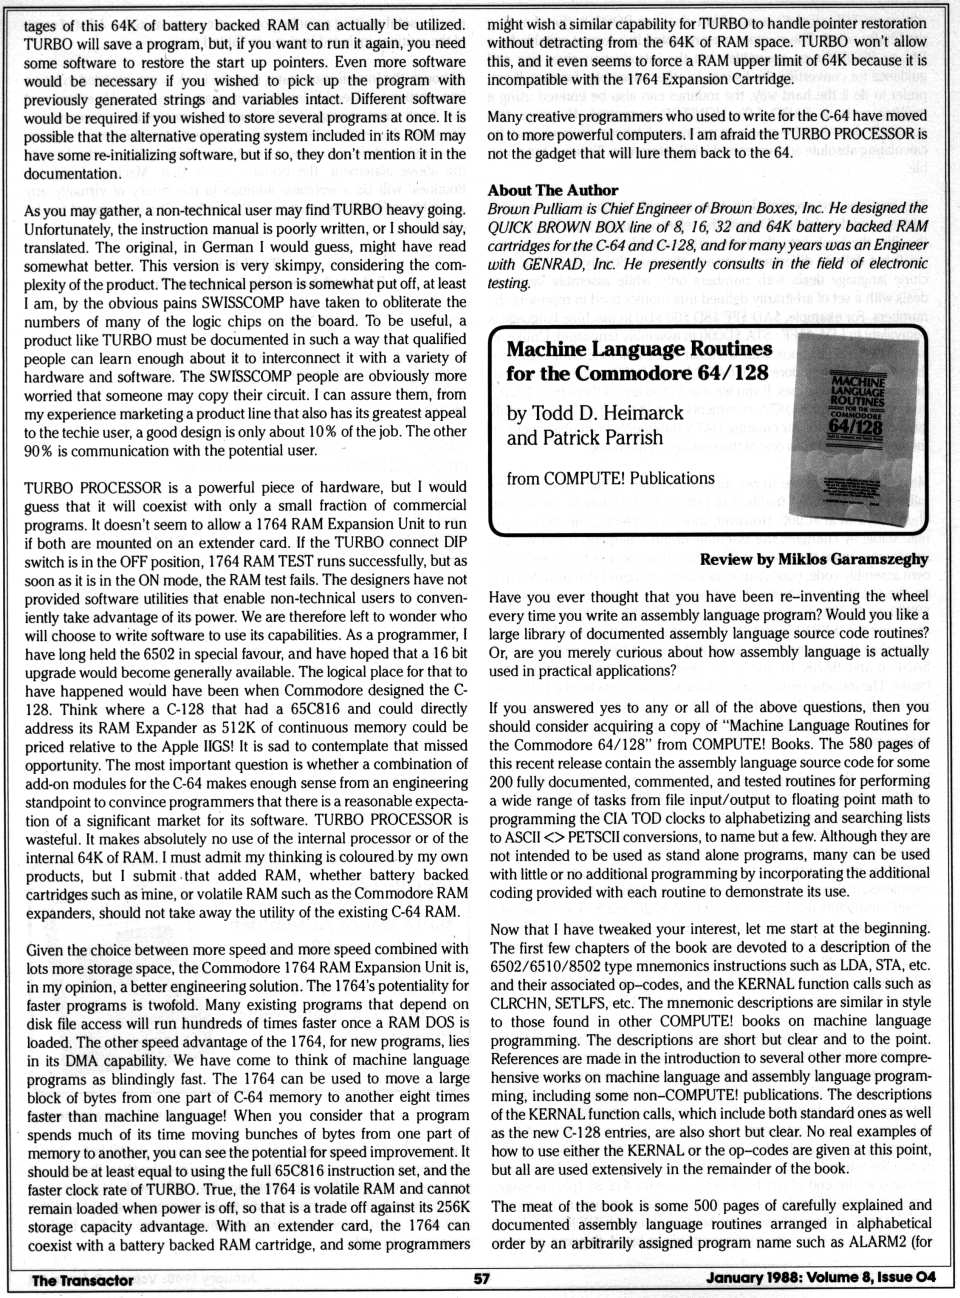 [Reviews  The Turbo Processor for the C64 (2/2)  Machine Language Routines for the Commodore 64/128 (1/2)]